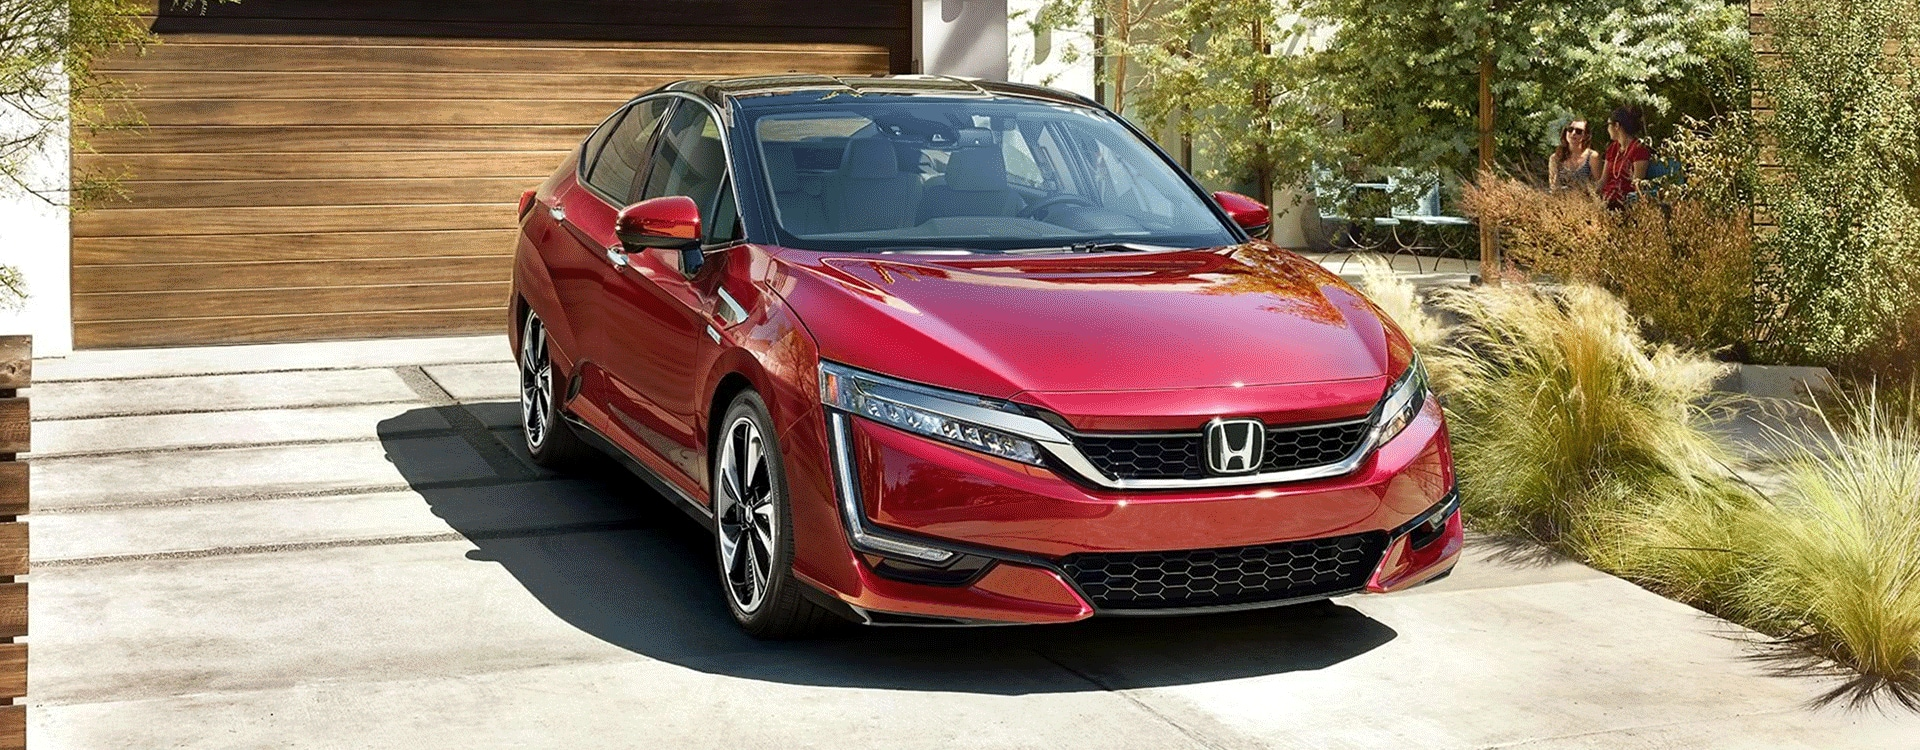 Lovely Moon Township Honda, Your Honda Dealer Near Pittsburgh, Is Incredibly Proud  To Say That The 2018 Honda Clarity Series Is Being Recognized As The 2018  Green ...